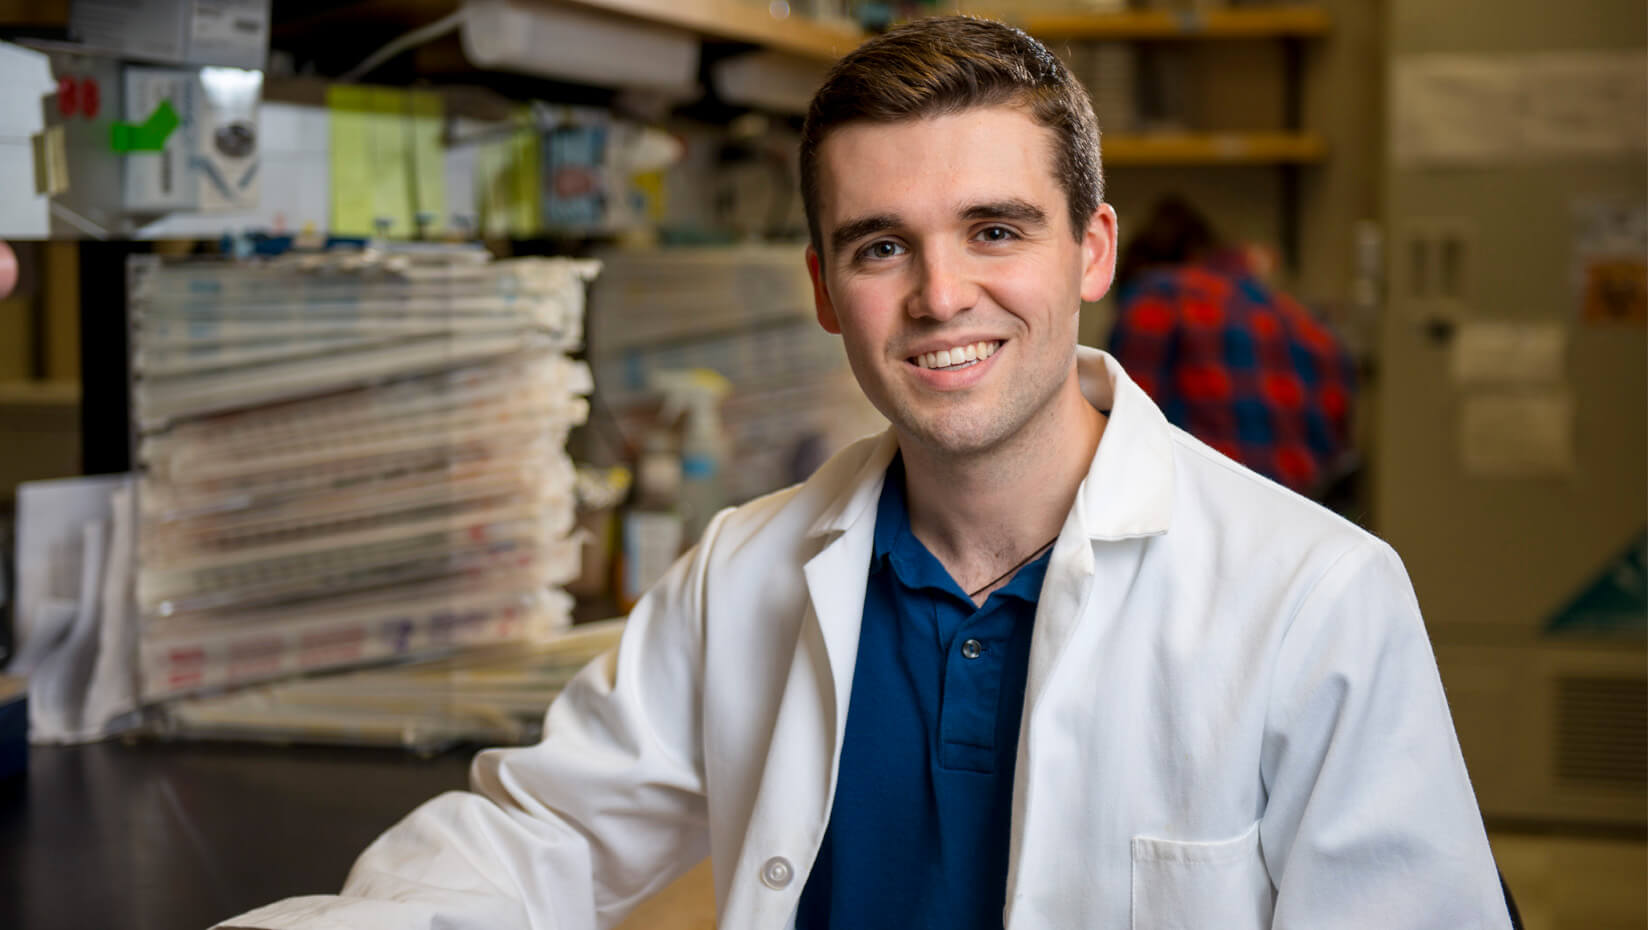 featured image for Drew Brooks: Microbiology, music double major on track for medical school